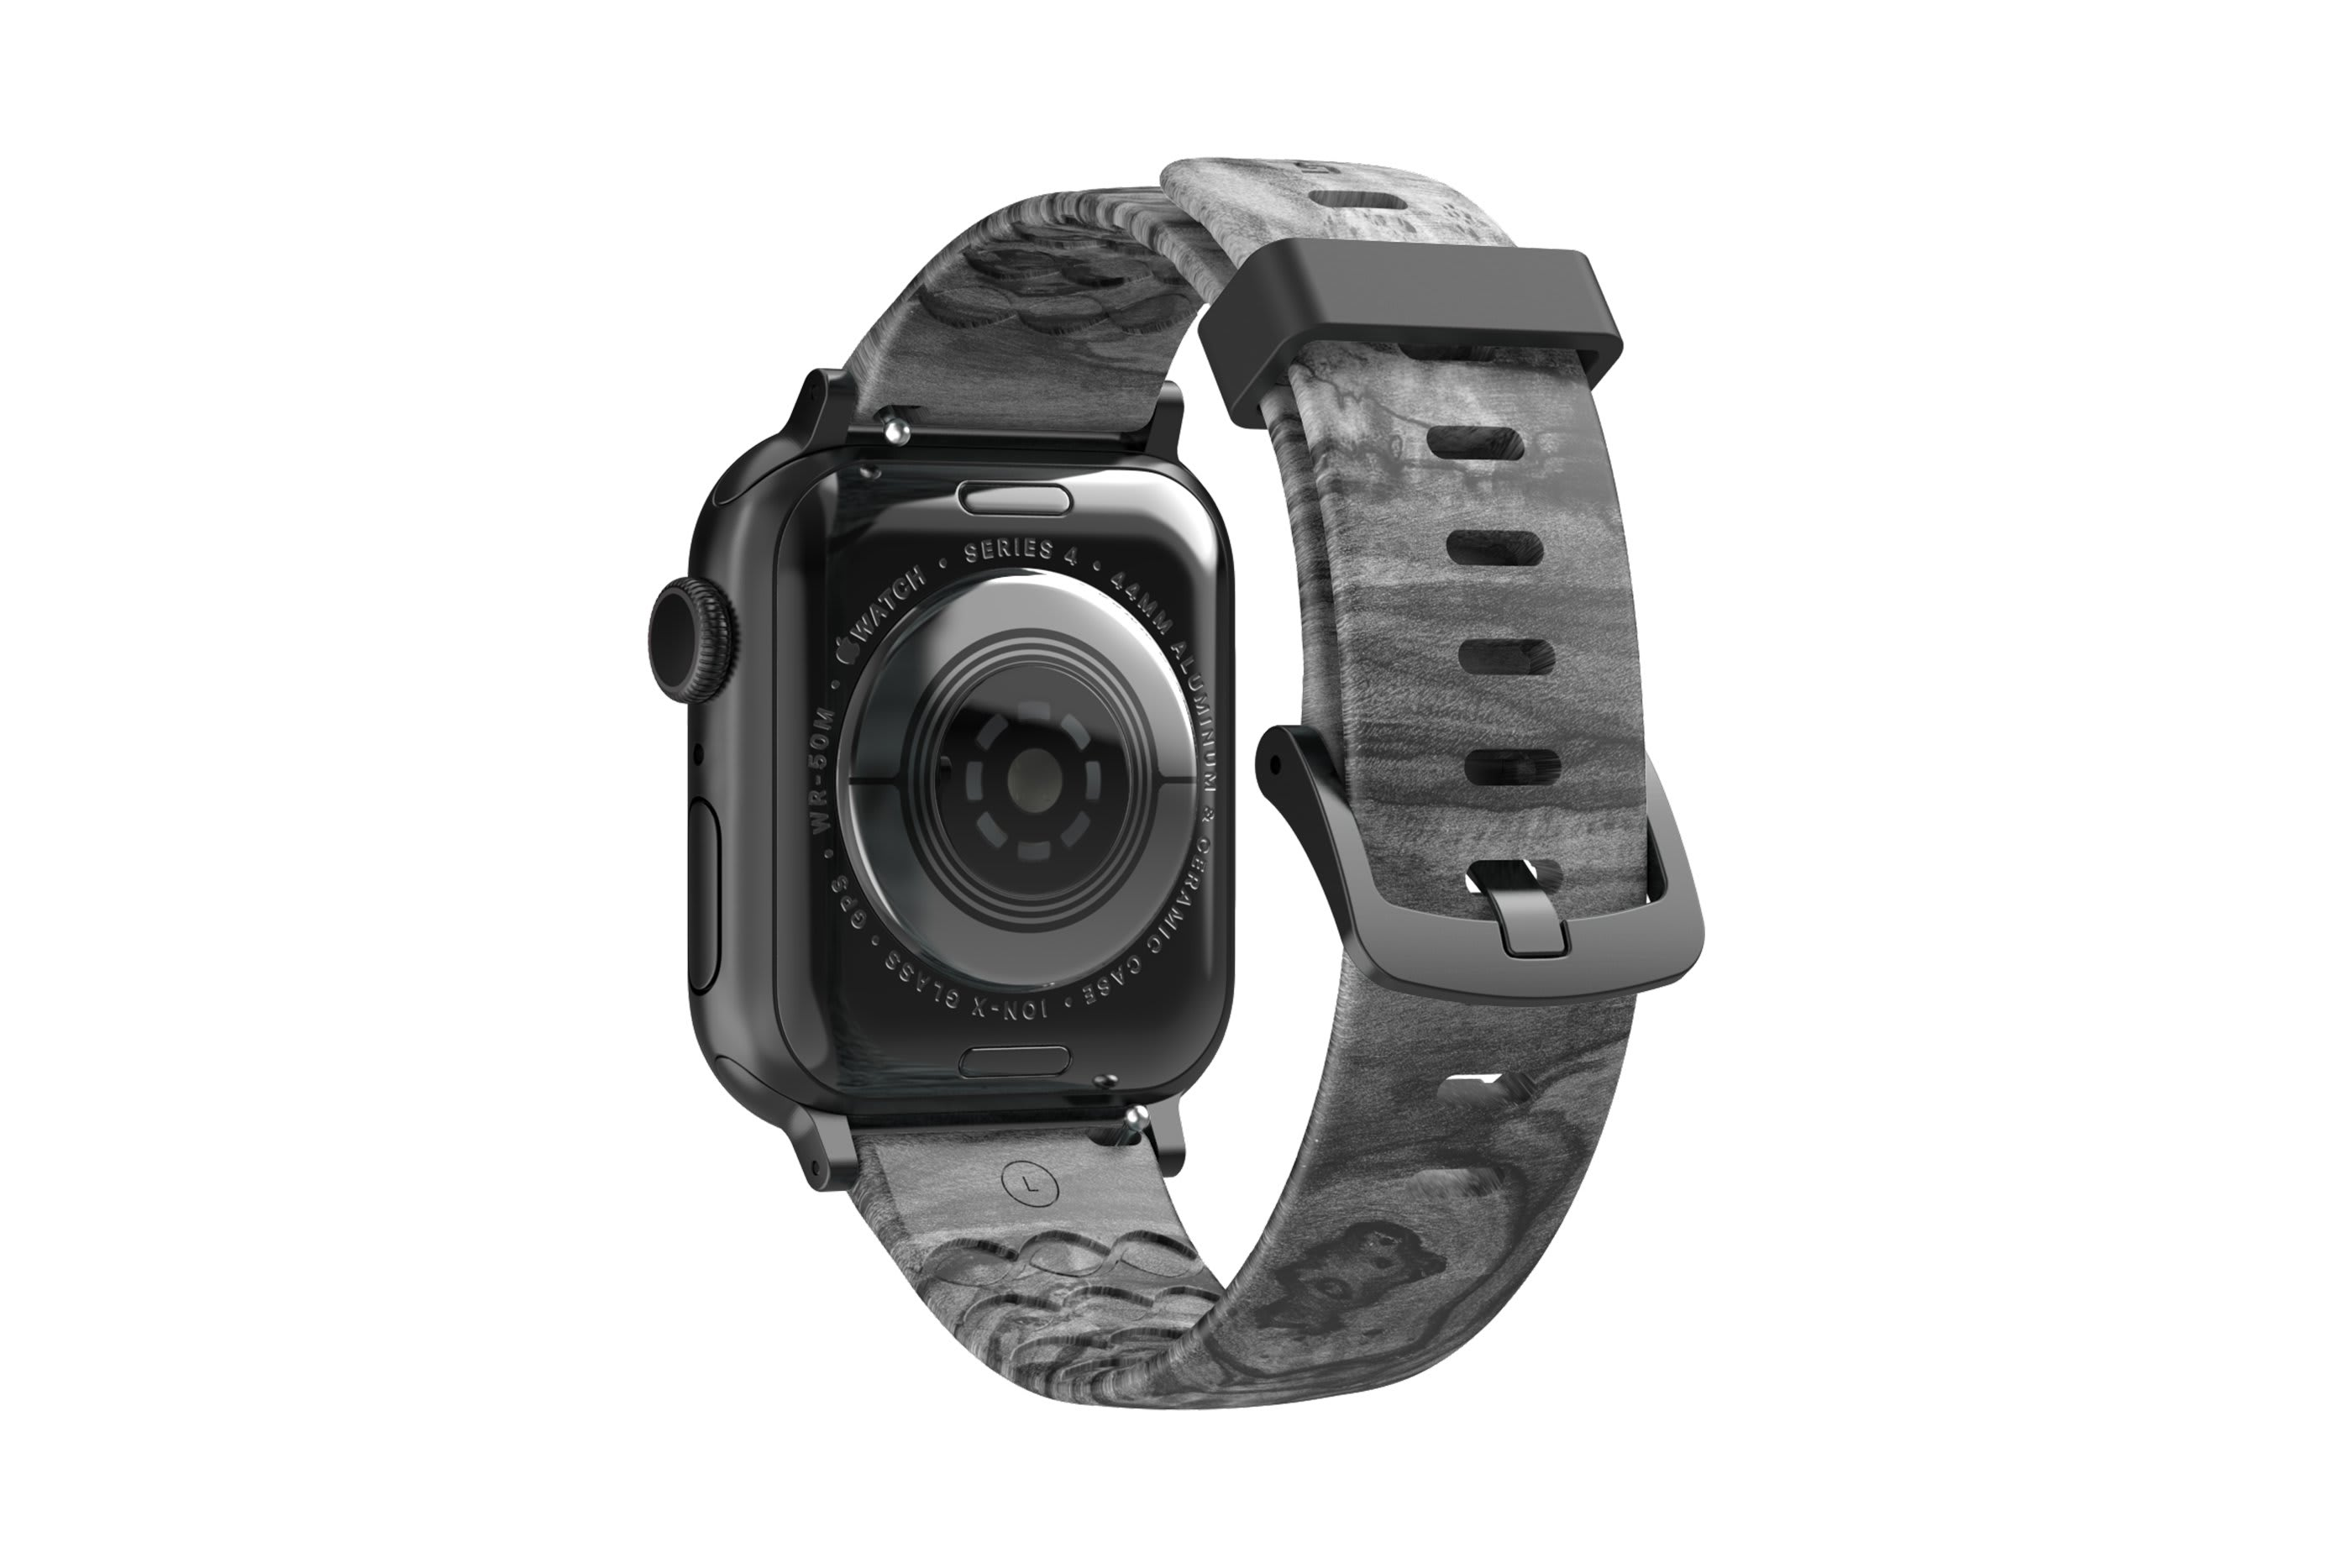 Nomad Relic Apple Watch band with gray hardware viewed from rear